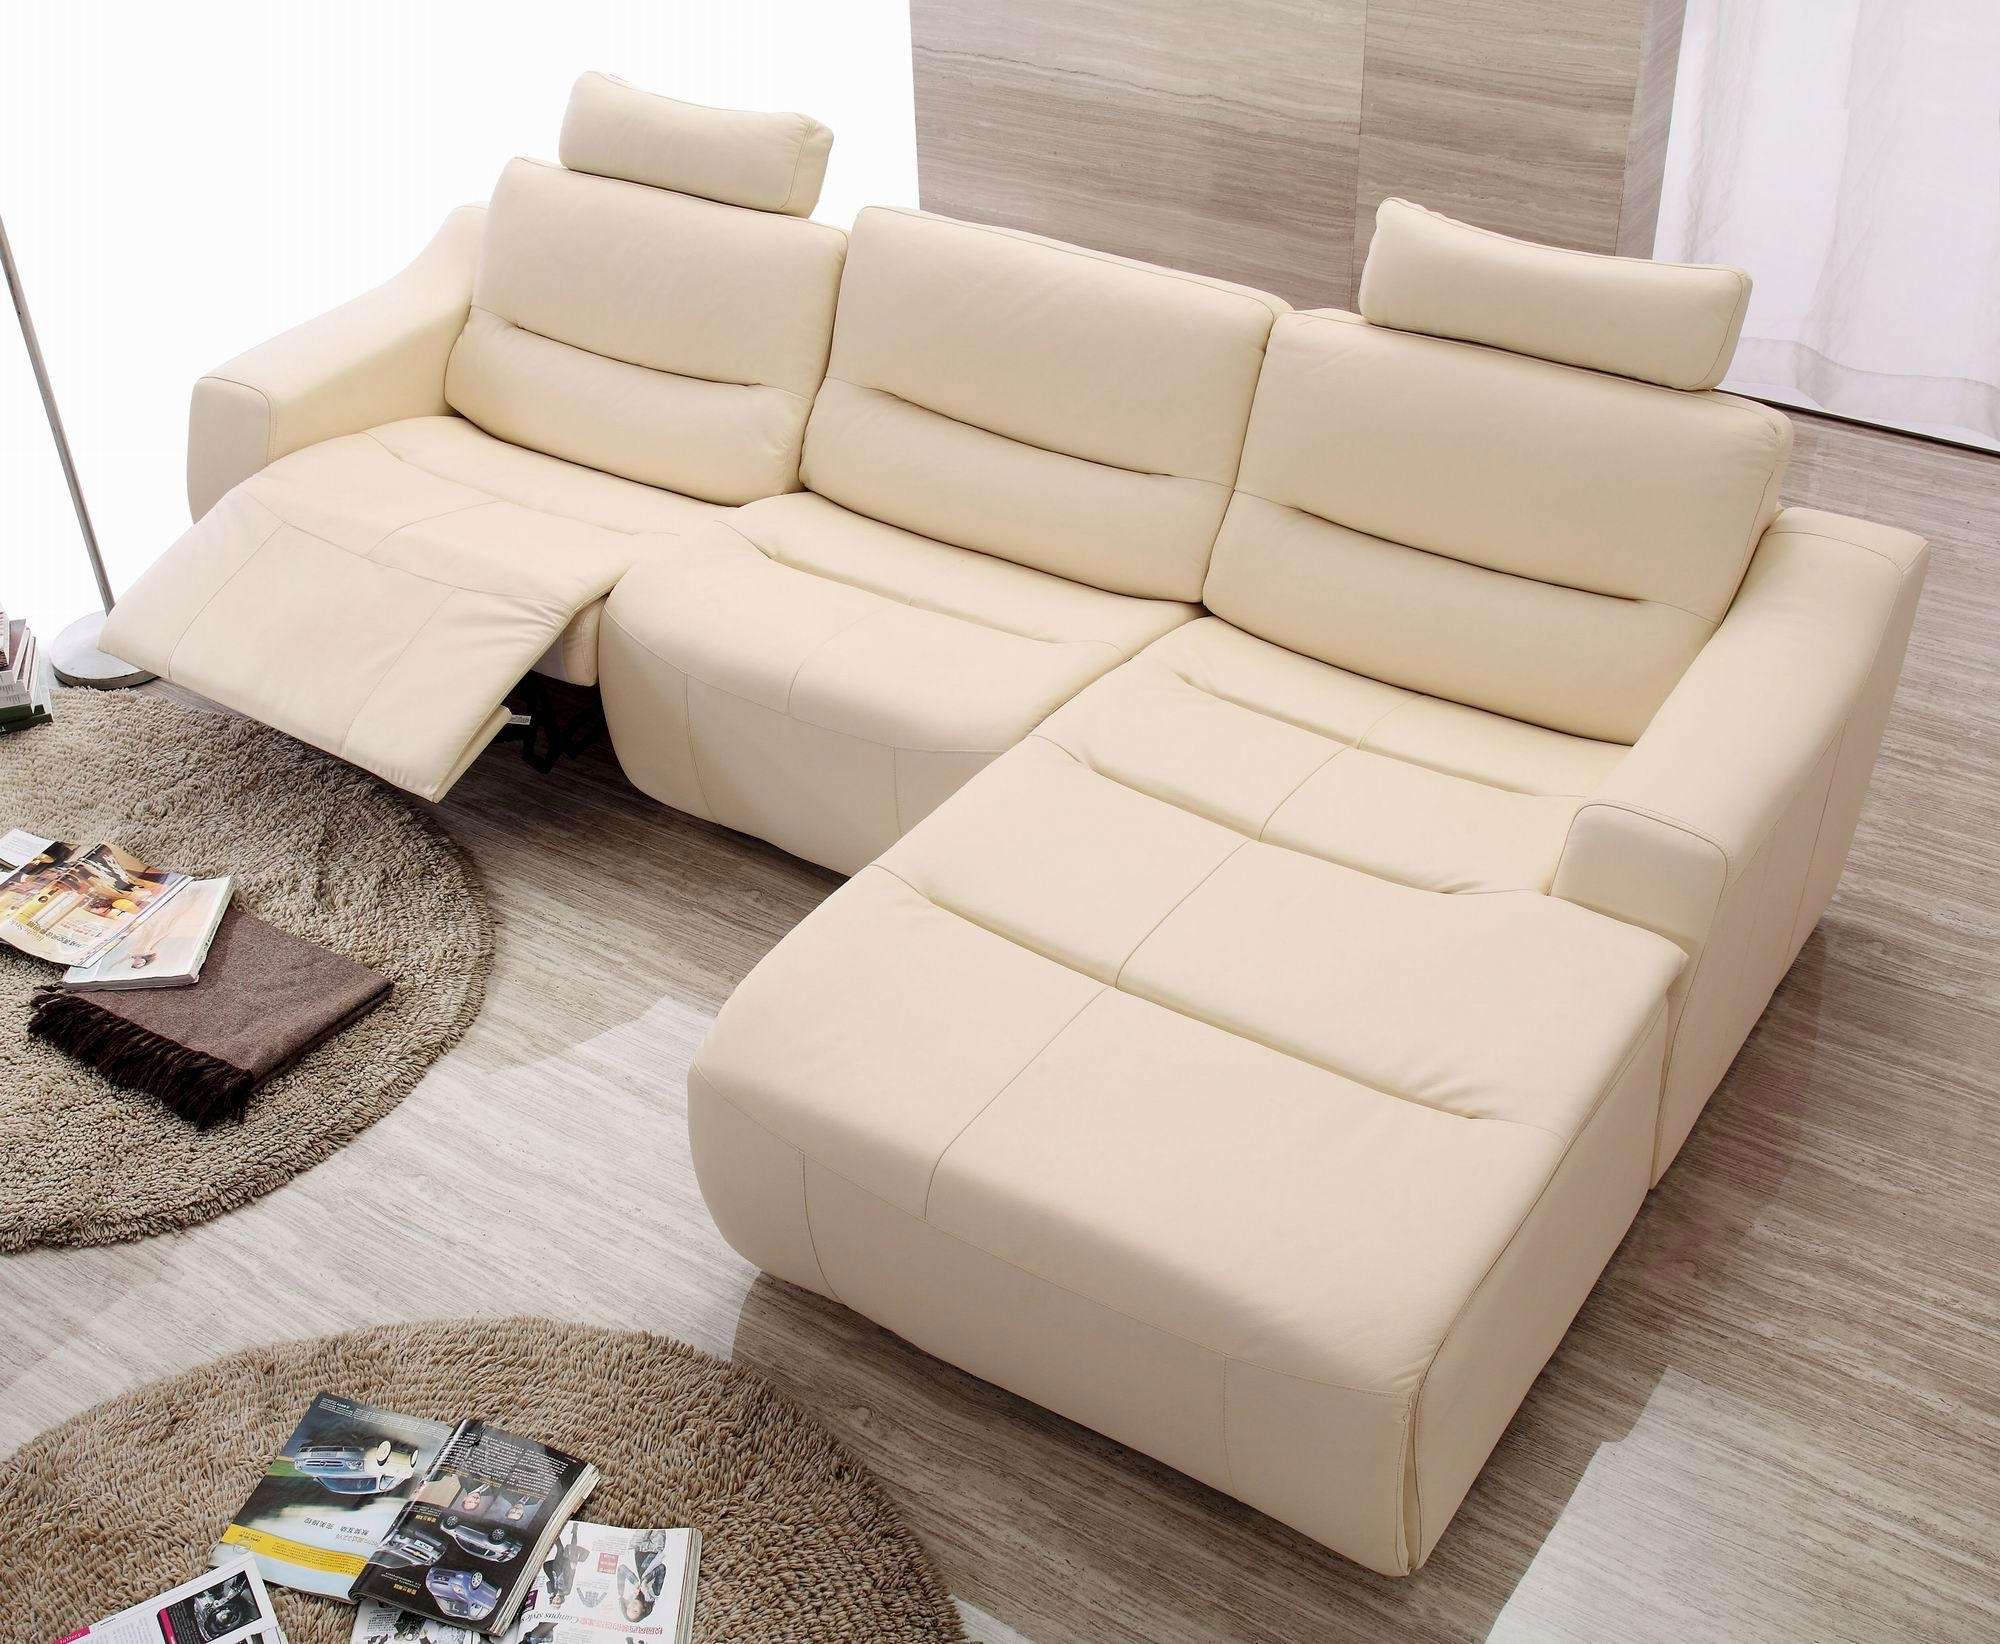 Contemporary Sectional Sofas For Small Spaces #9270 In Small Sectional Sofas For Small Spaces (Image 8 of 20)